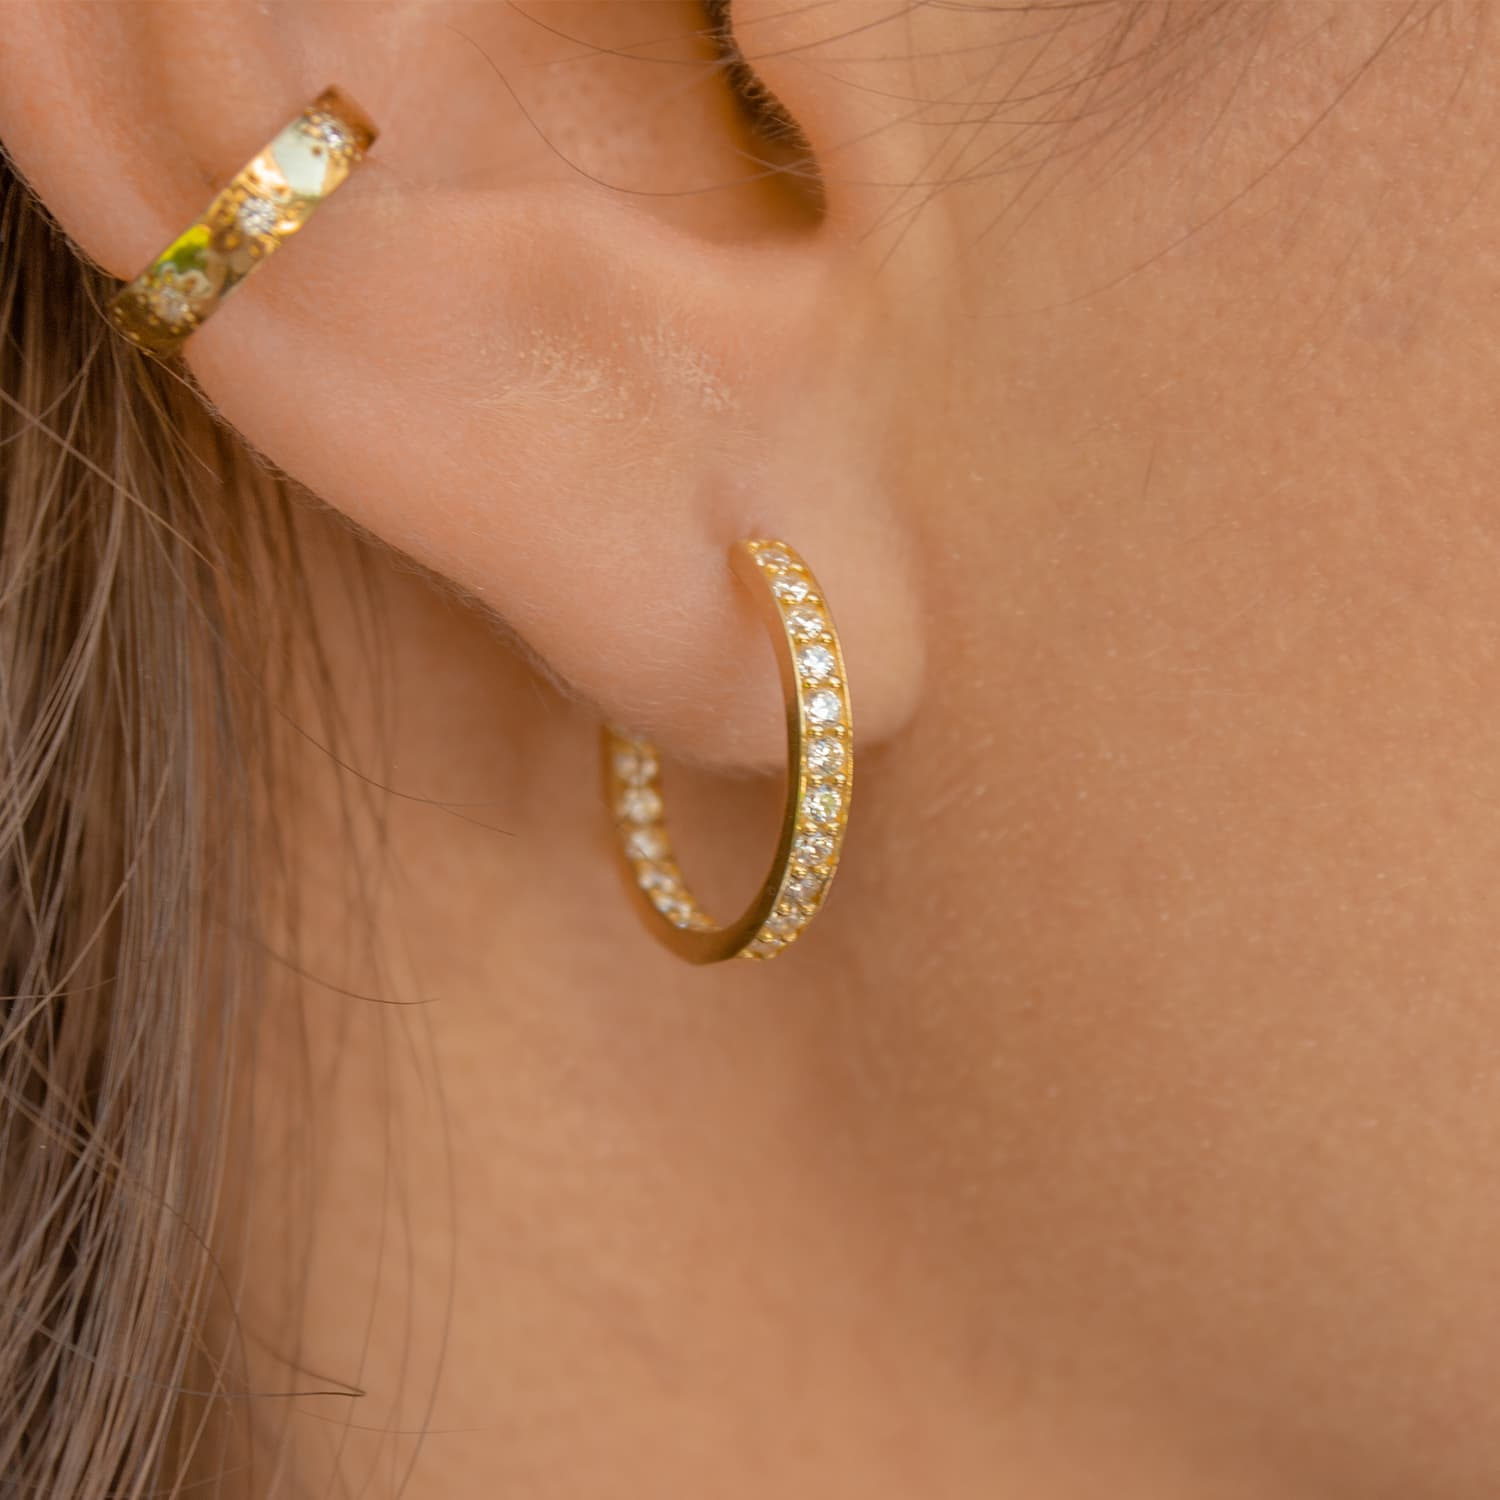 MIDI DOUBLE SIDED STONE RING EARRING 11.5MM